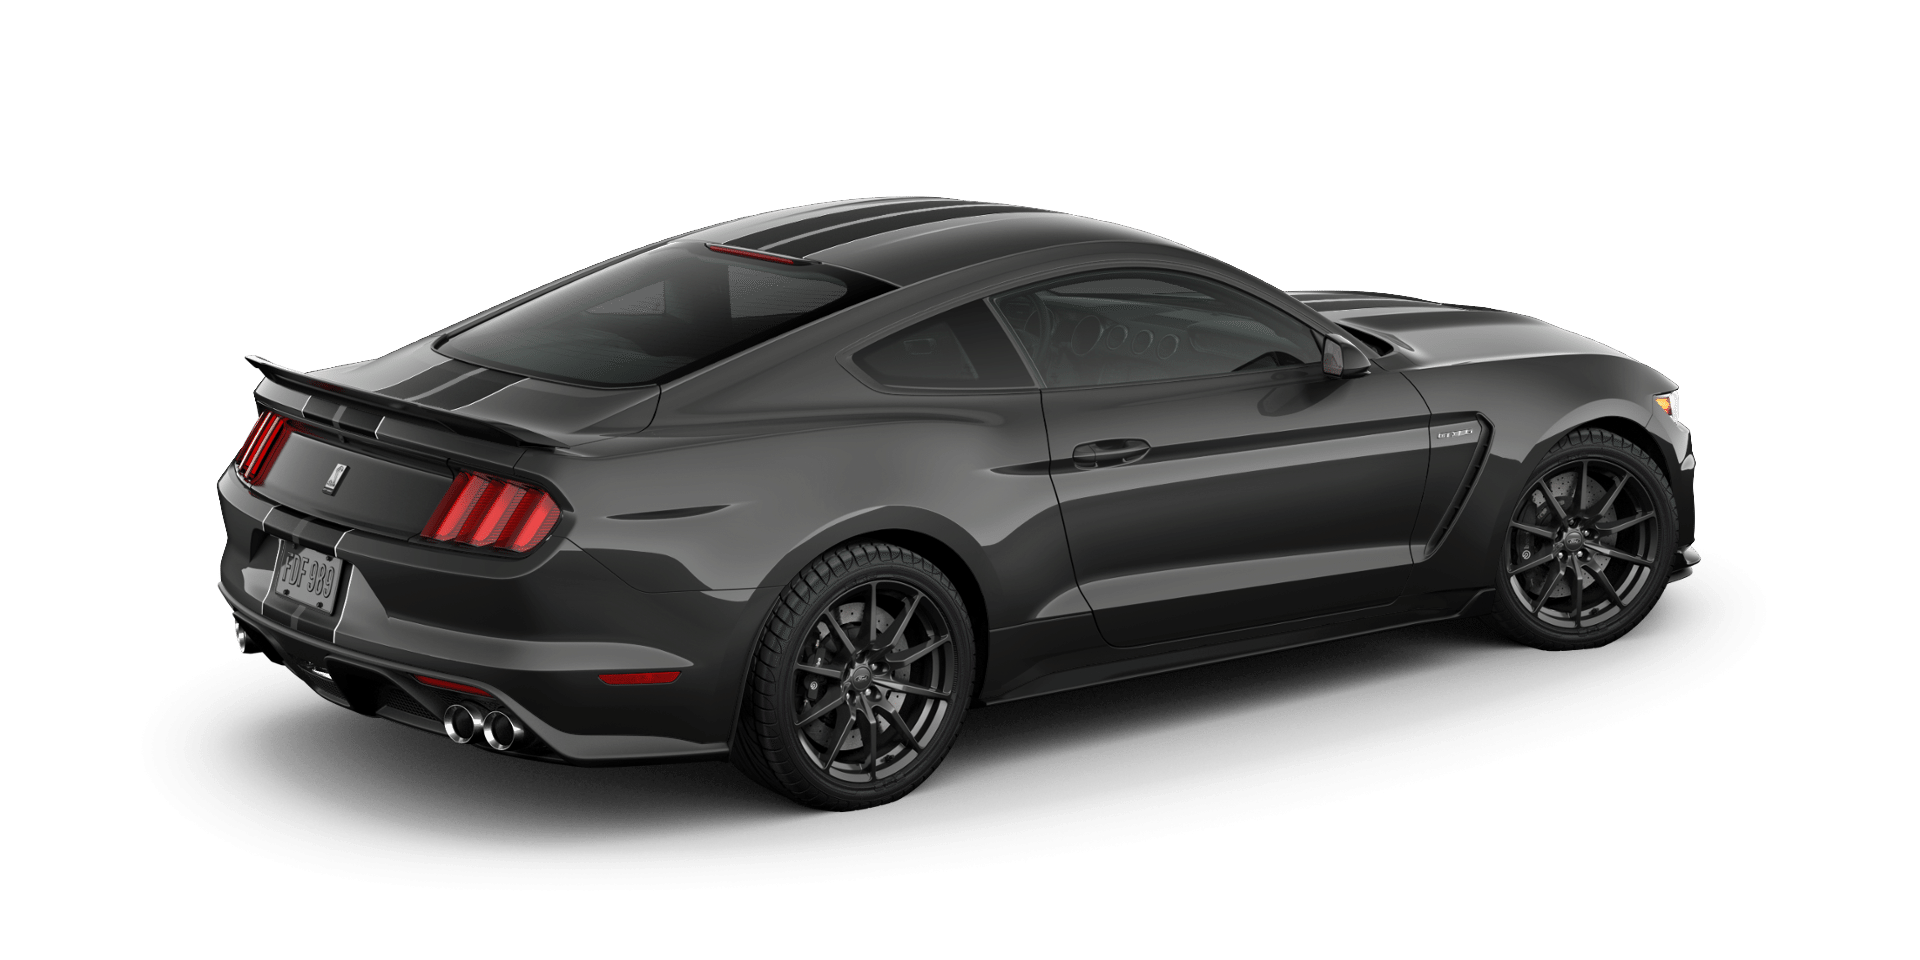 2017 Ford Mustang - Build & Price | Ford mustang, Mustang ...